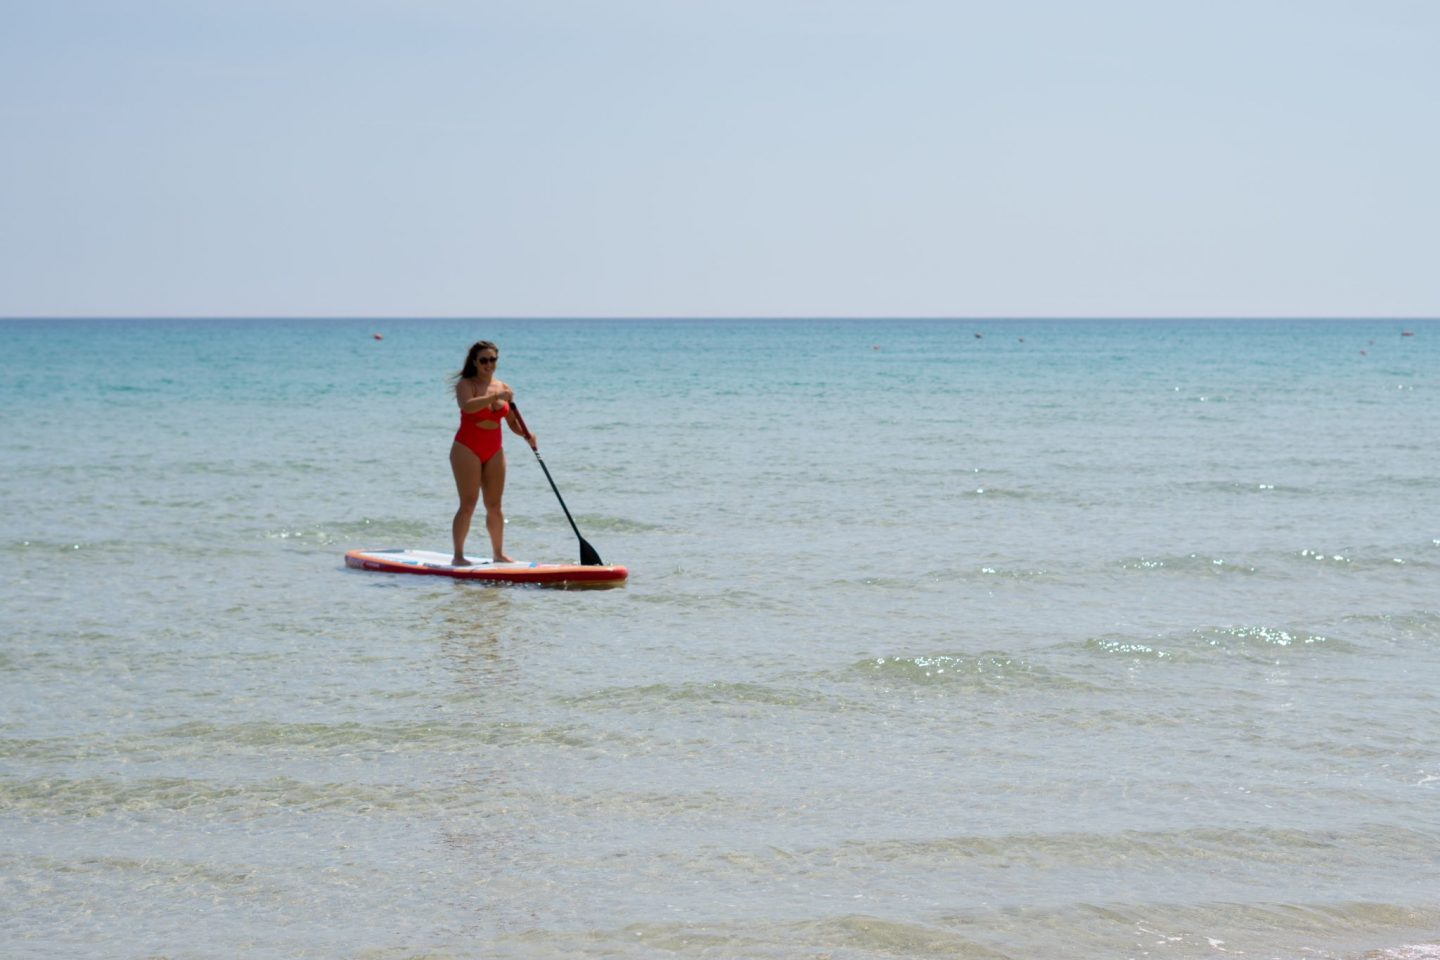 Nadia El Ferdaoussi, the daily s'elf, Brindisi, Puglia. Travel in Italy SUP Stand Up Paddle Guna Beach